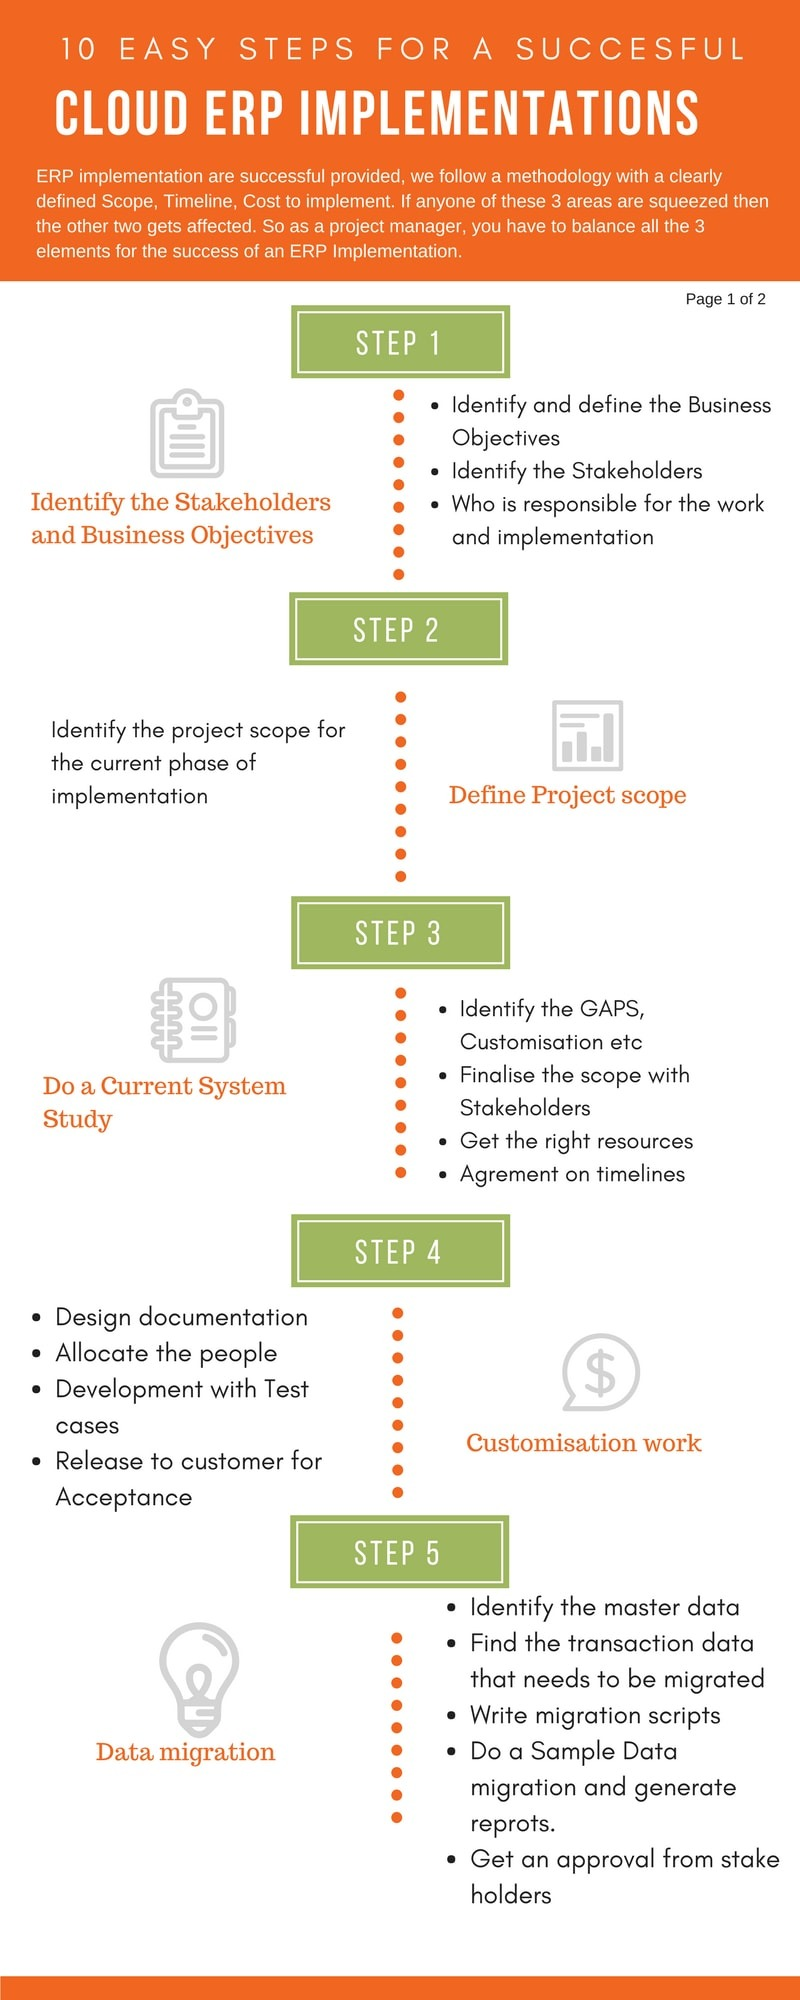 10 Steps For A Successful Erp Implementation Infographic